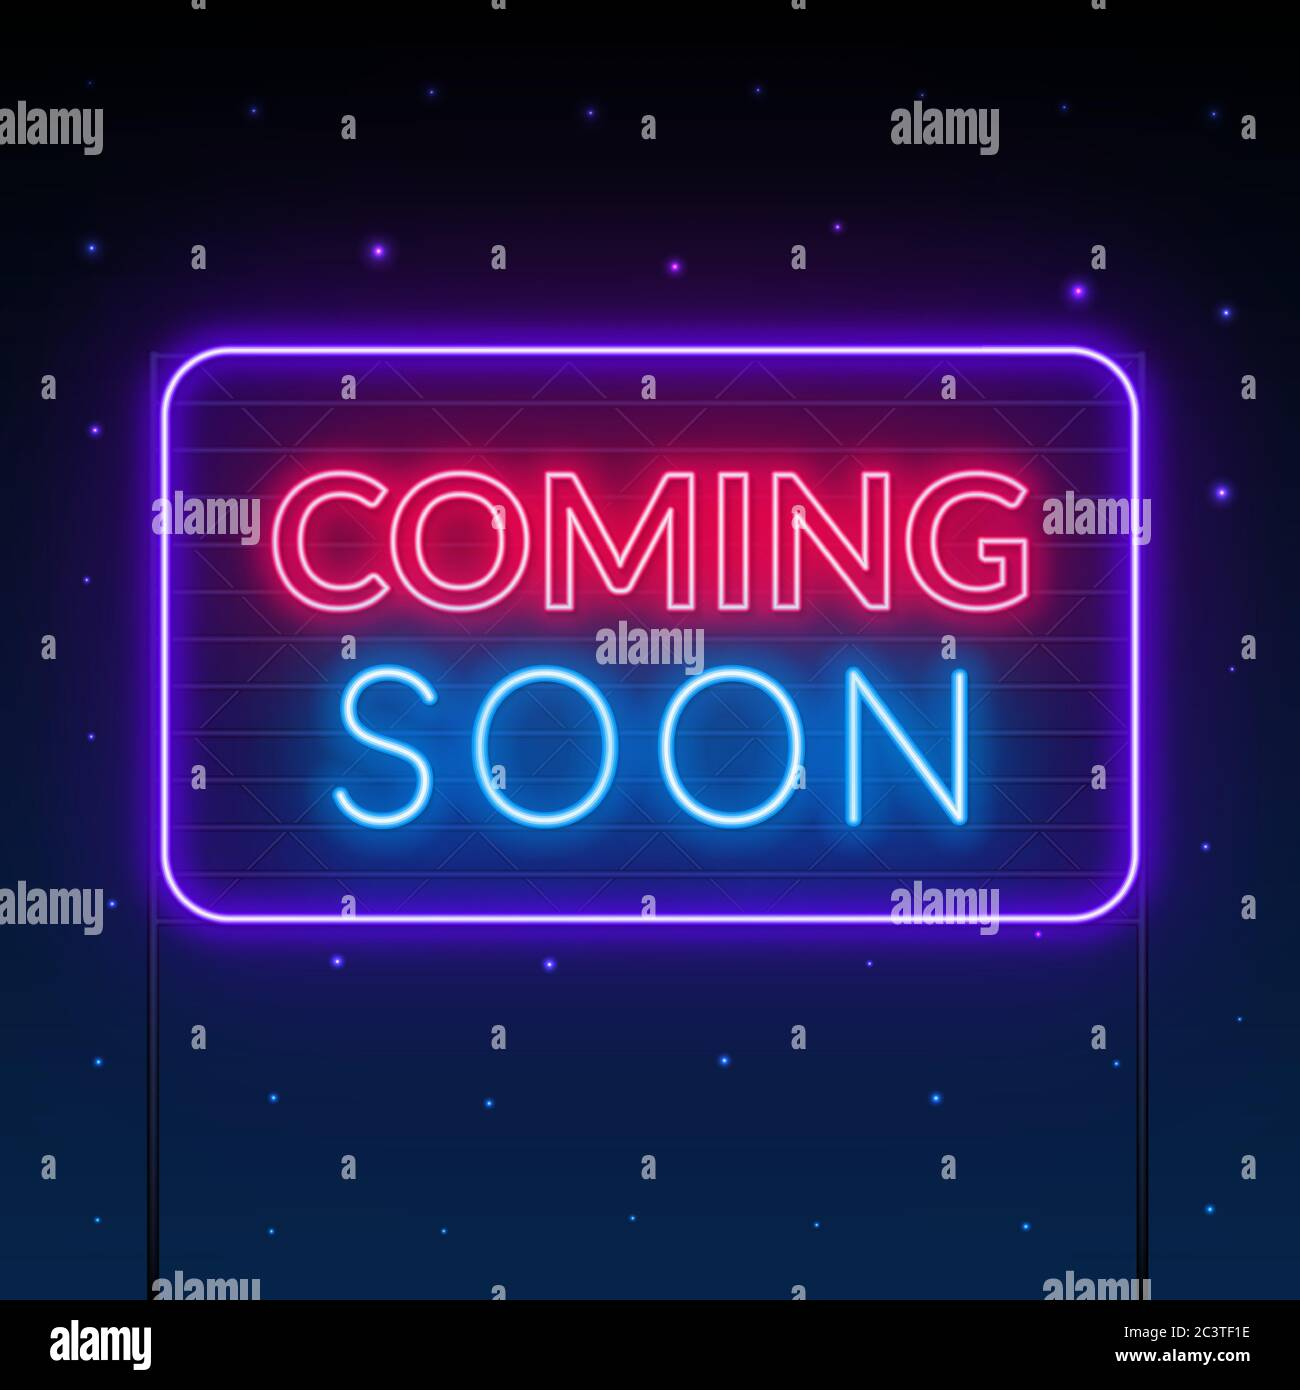 Coming Soon Neon Sign On Dark Background Stock Vector Image Art Alamy